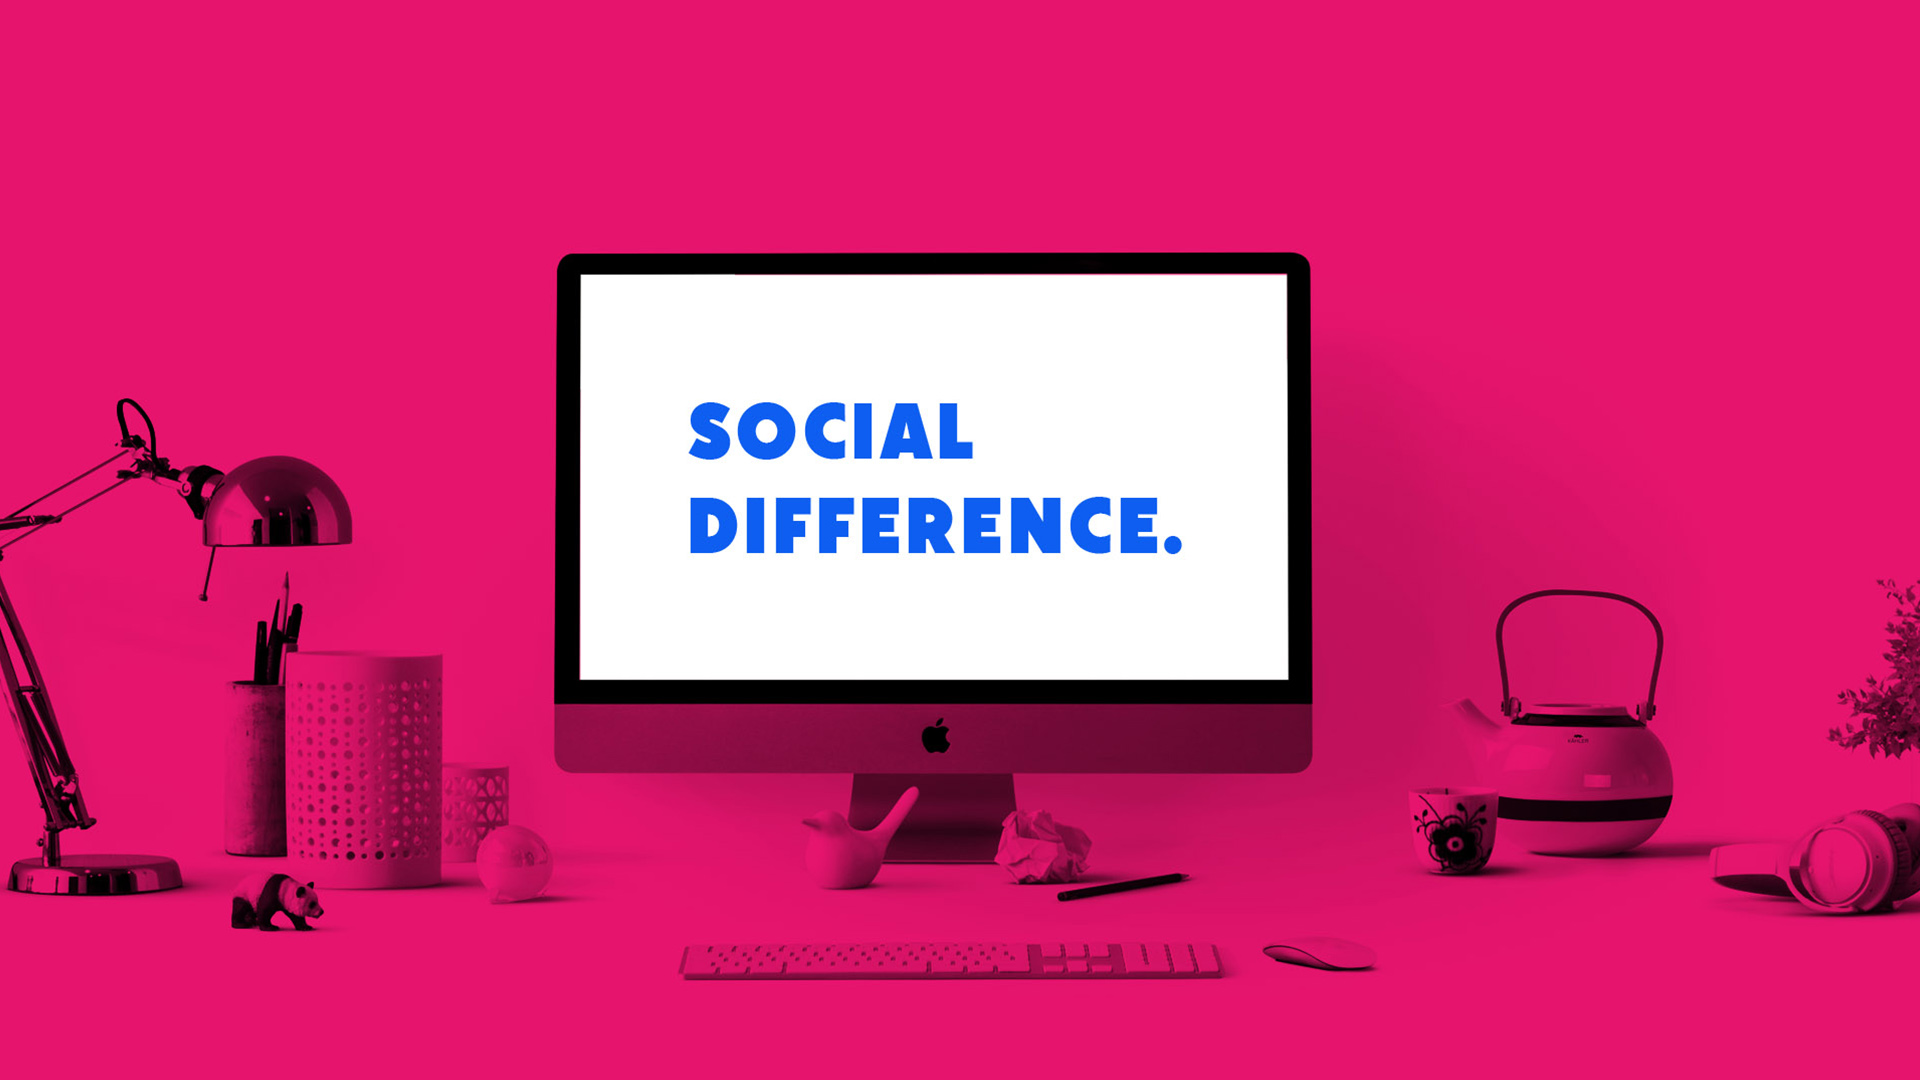 Social Difference